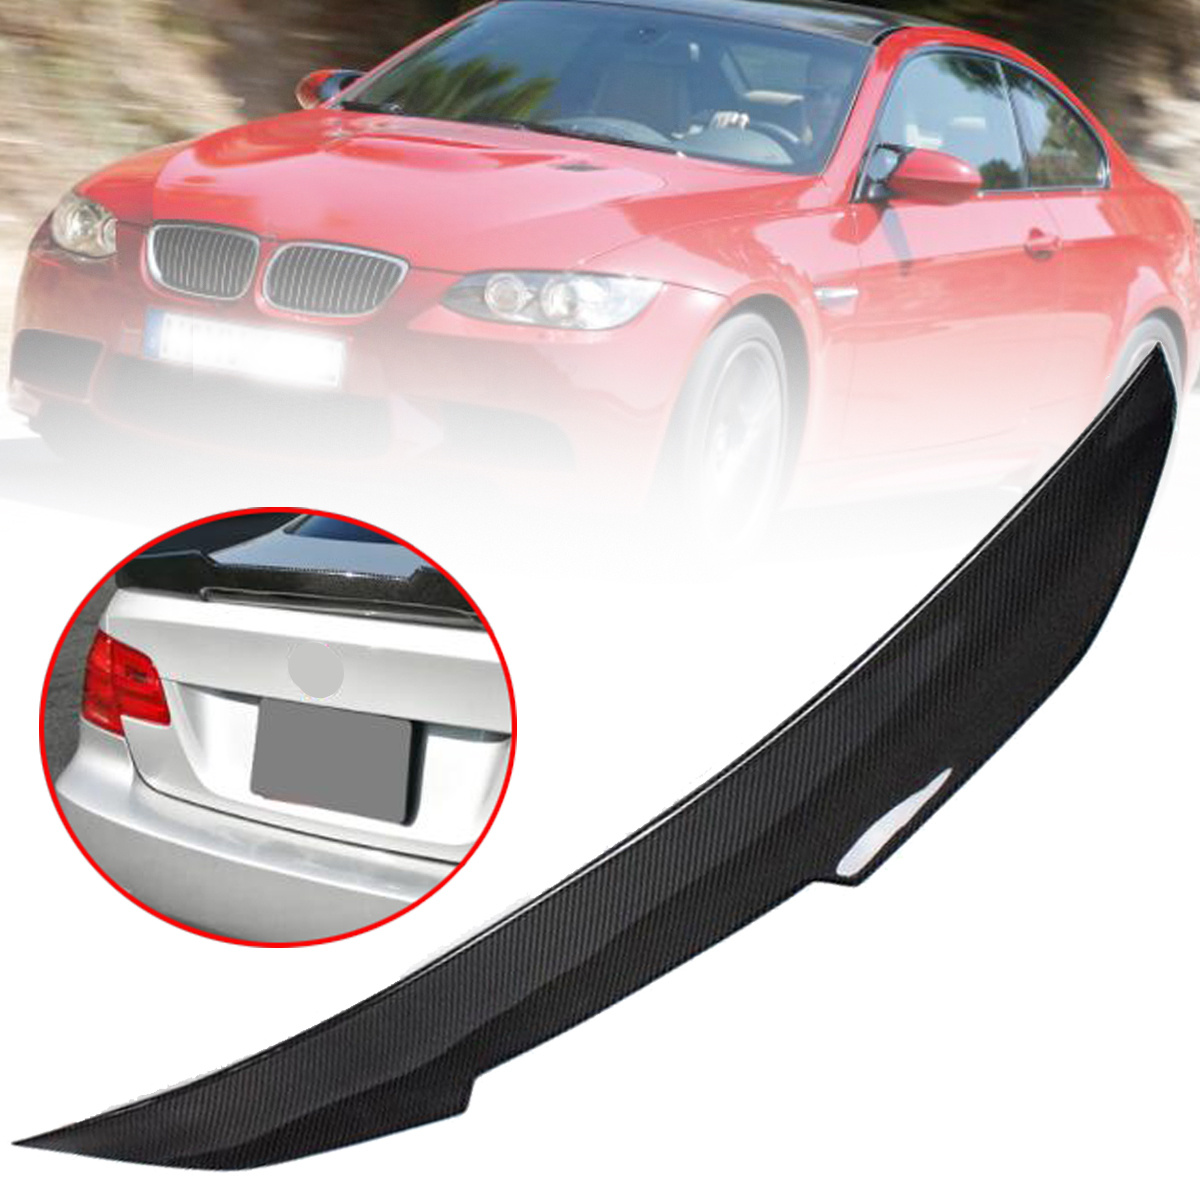 REAL Carbon Fiber High Kick Trunk Spoiler Wing For BMW E92 Coupe 328i 335i M3